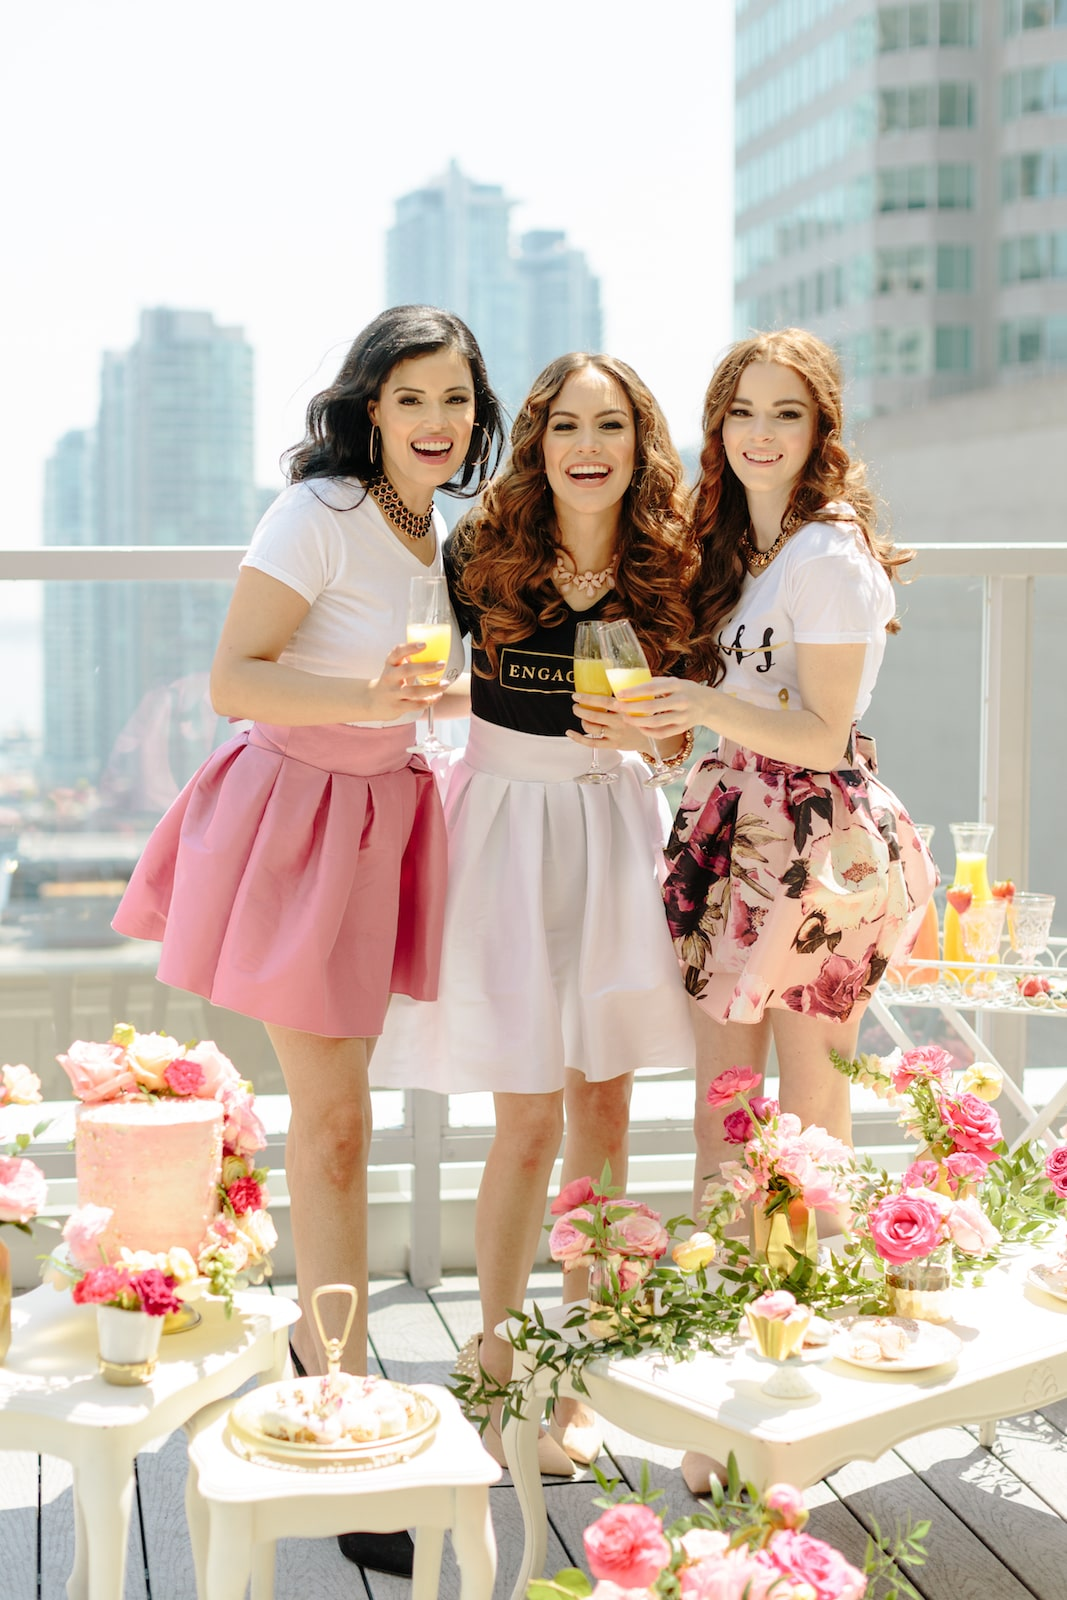 Golden girls: planning the perfect bridal shower - Todays